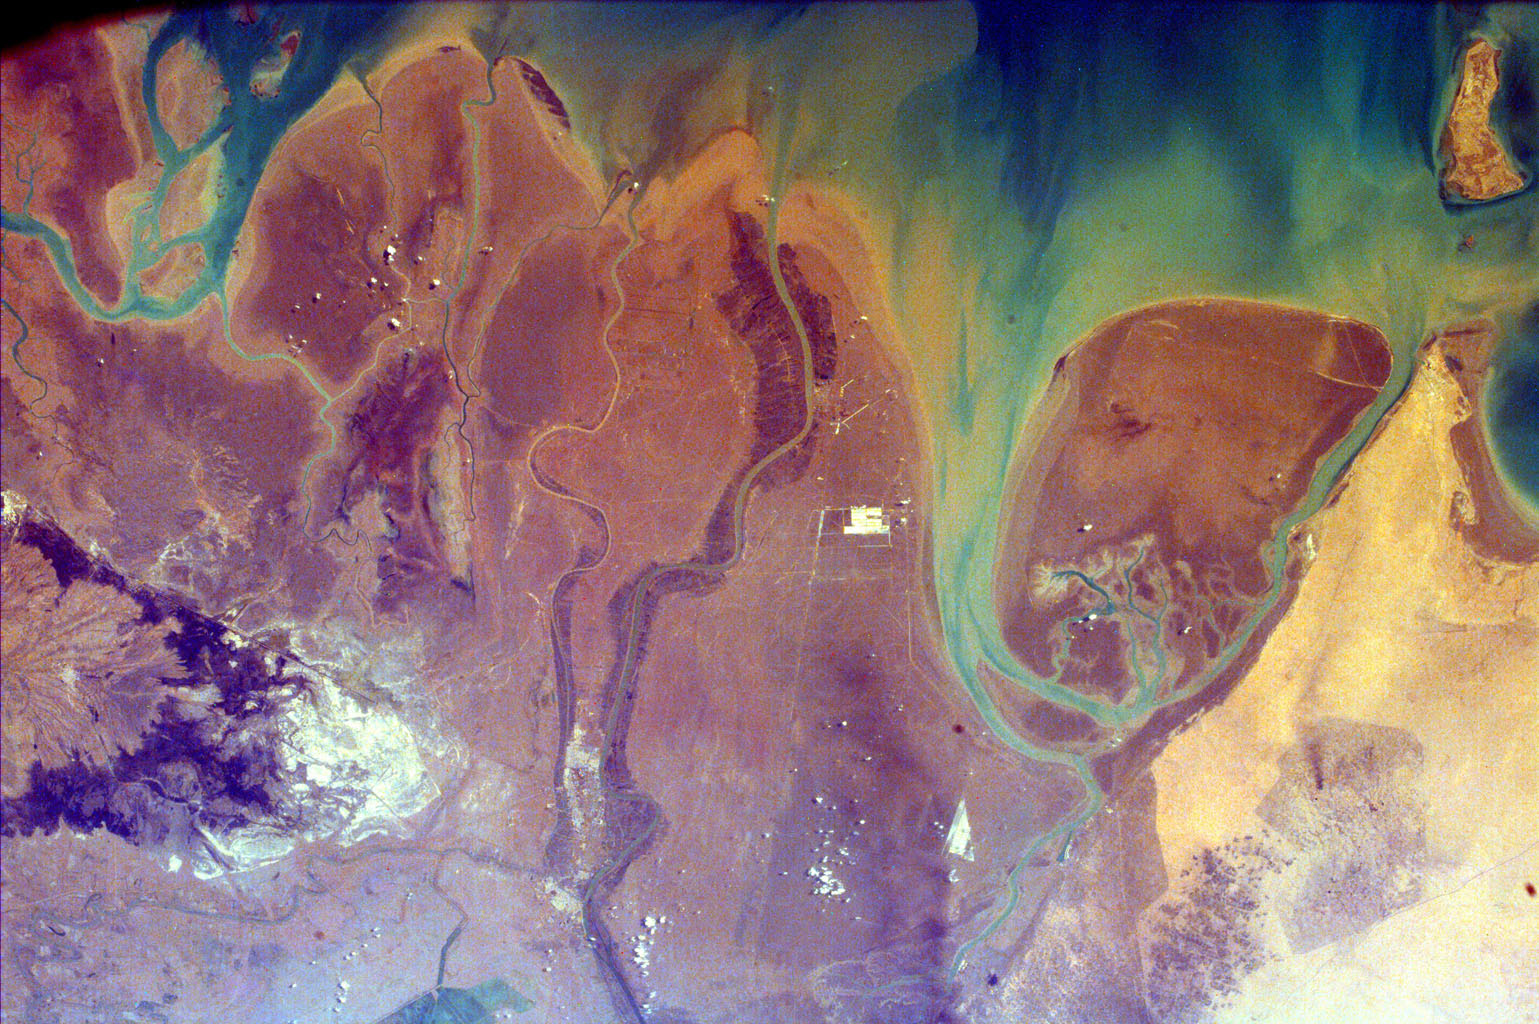 This image from NASA's EarthKAM is of the northern end of the Persian Gulf and the broad delta complex of the Tigris, Euphrates, Shatt al Arab, and Karun rivers has captured the arid-looking wetlands of northeast Kuwait (Bubiyan Island),